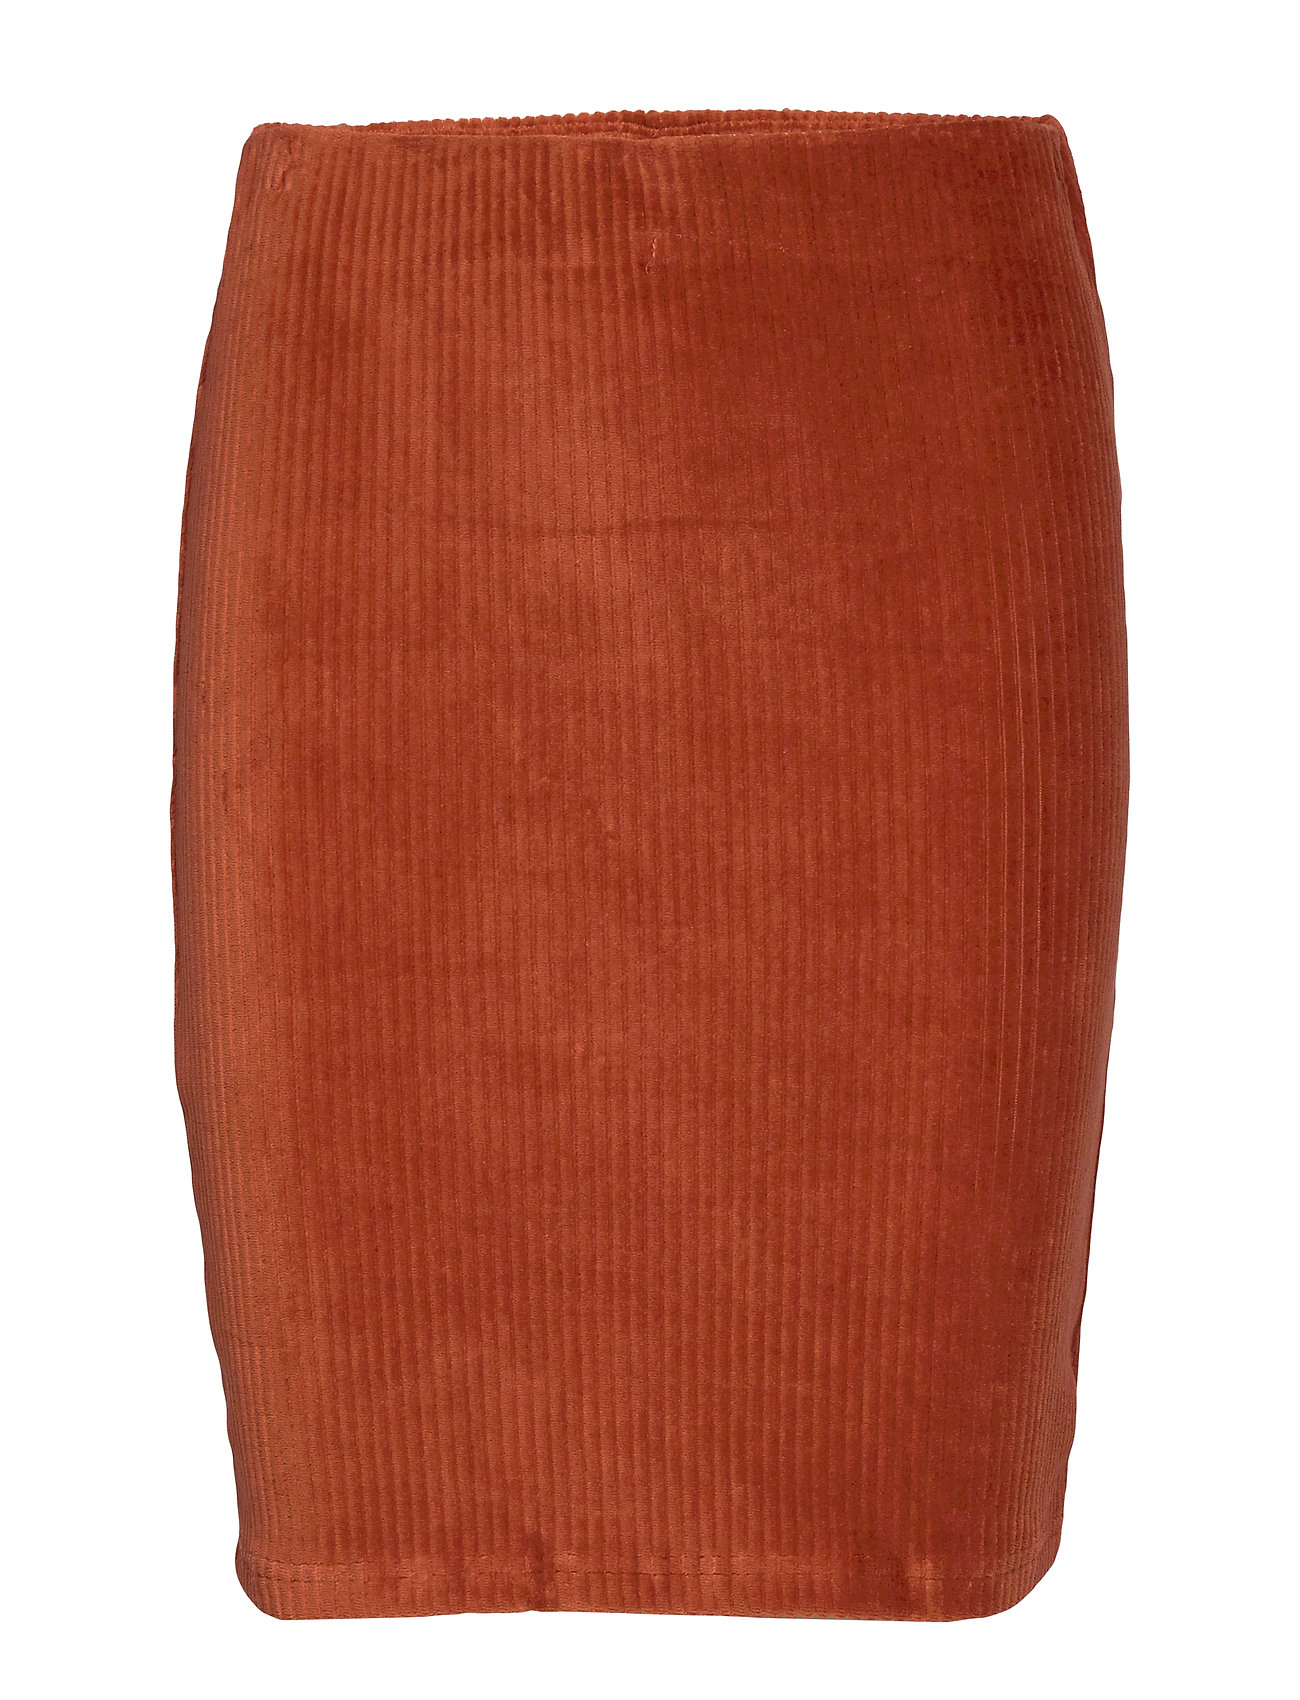 b.young BYPONSA SKIRT - - DARK COPPER